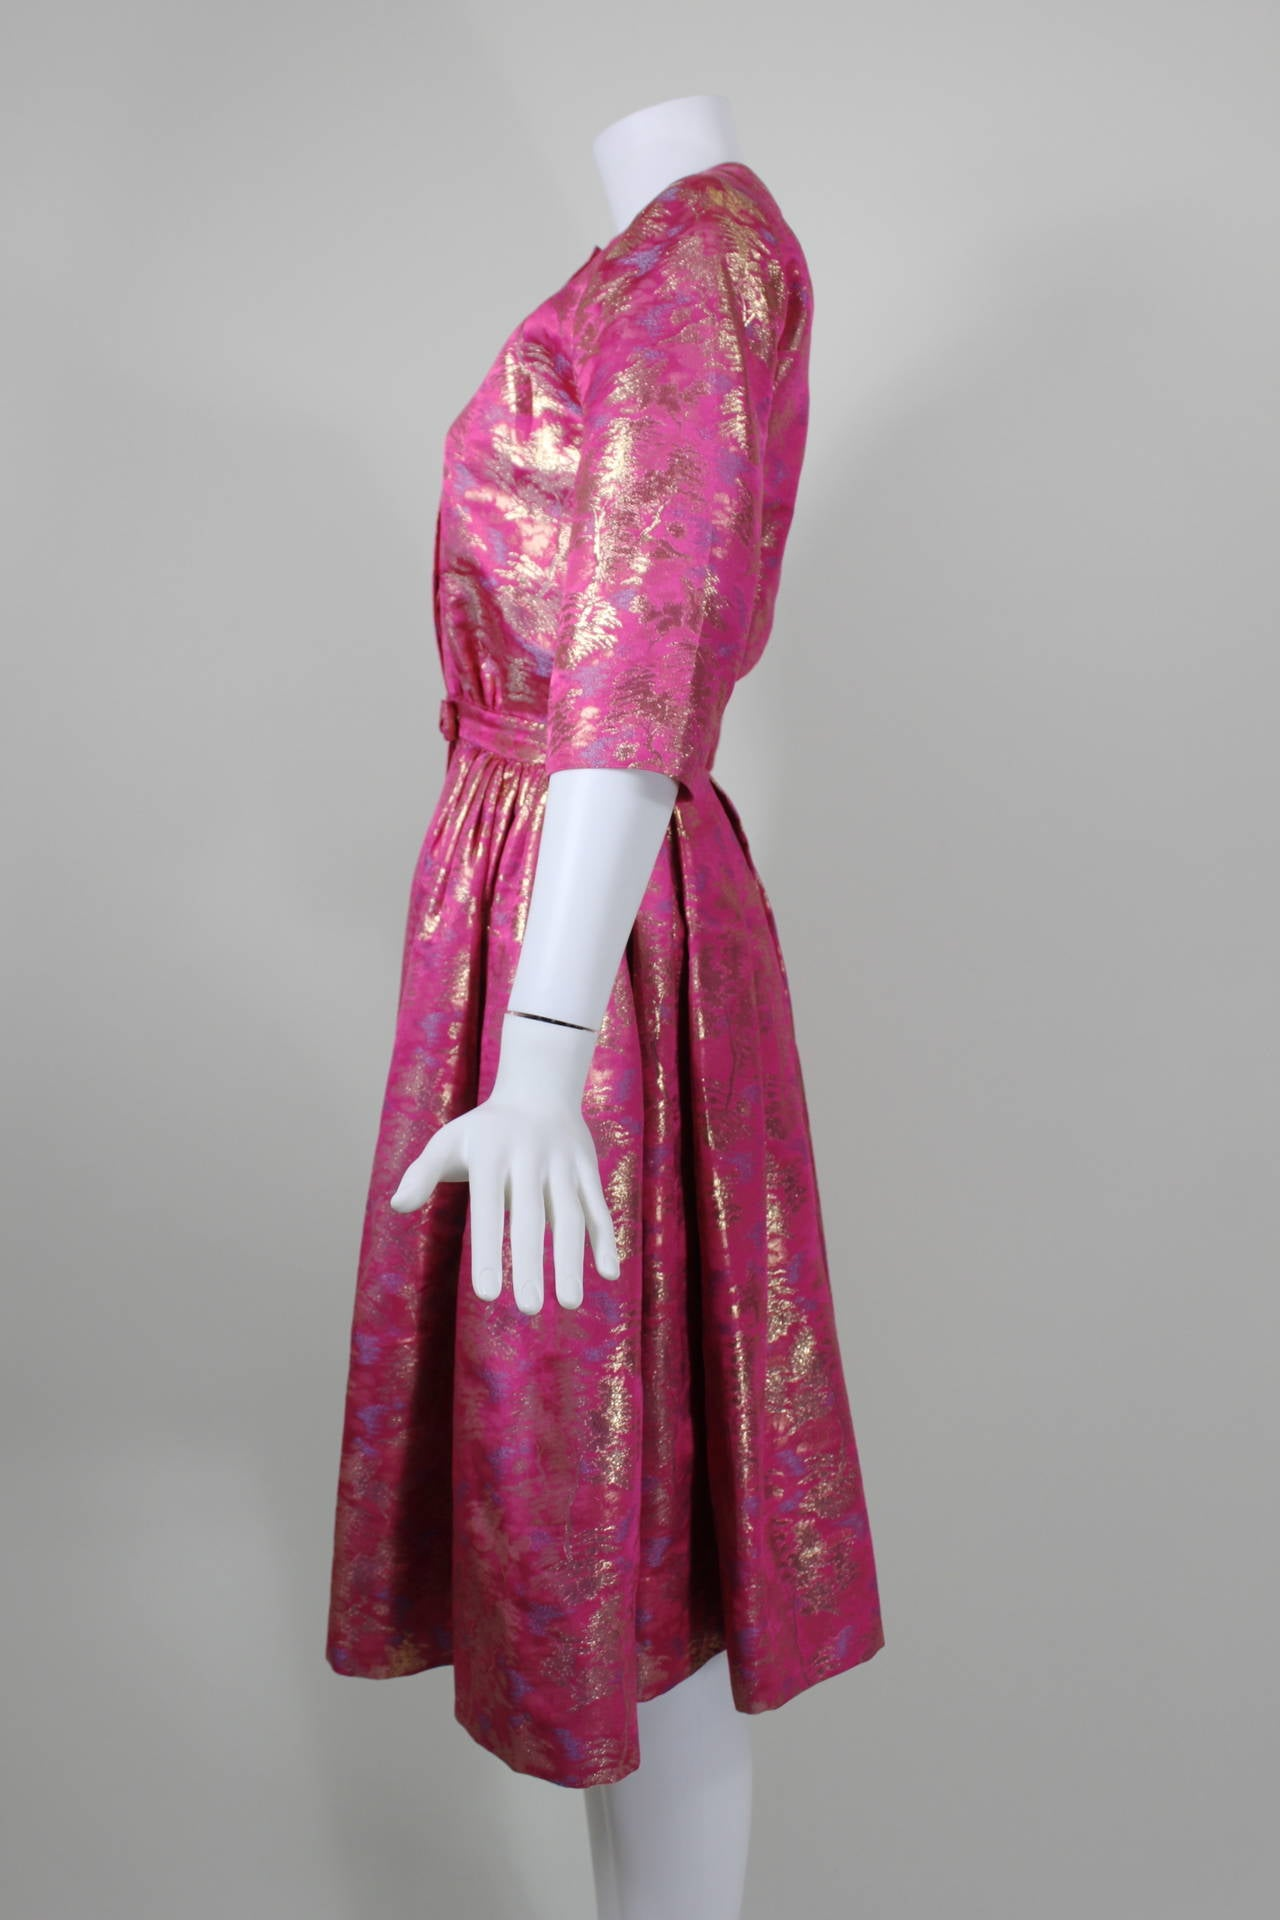 Larry Aldrich Hot Pink and Gold Tree Motif Brocade Dress 2